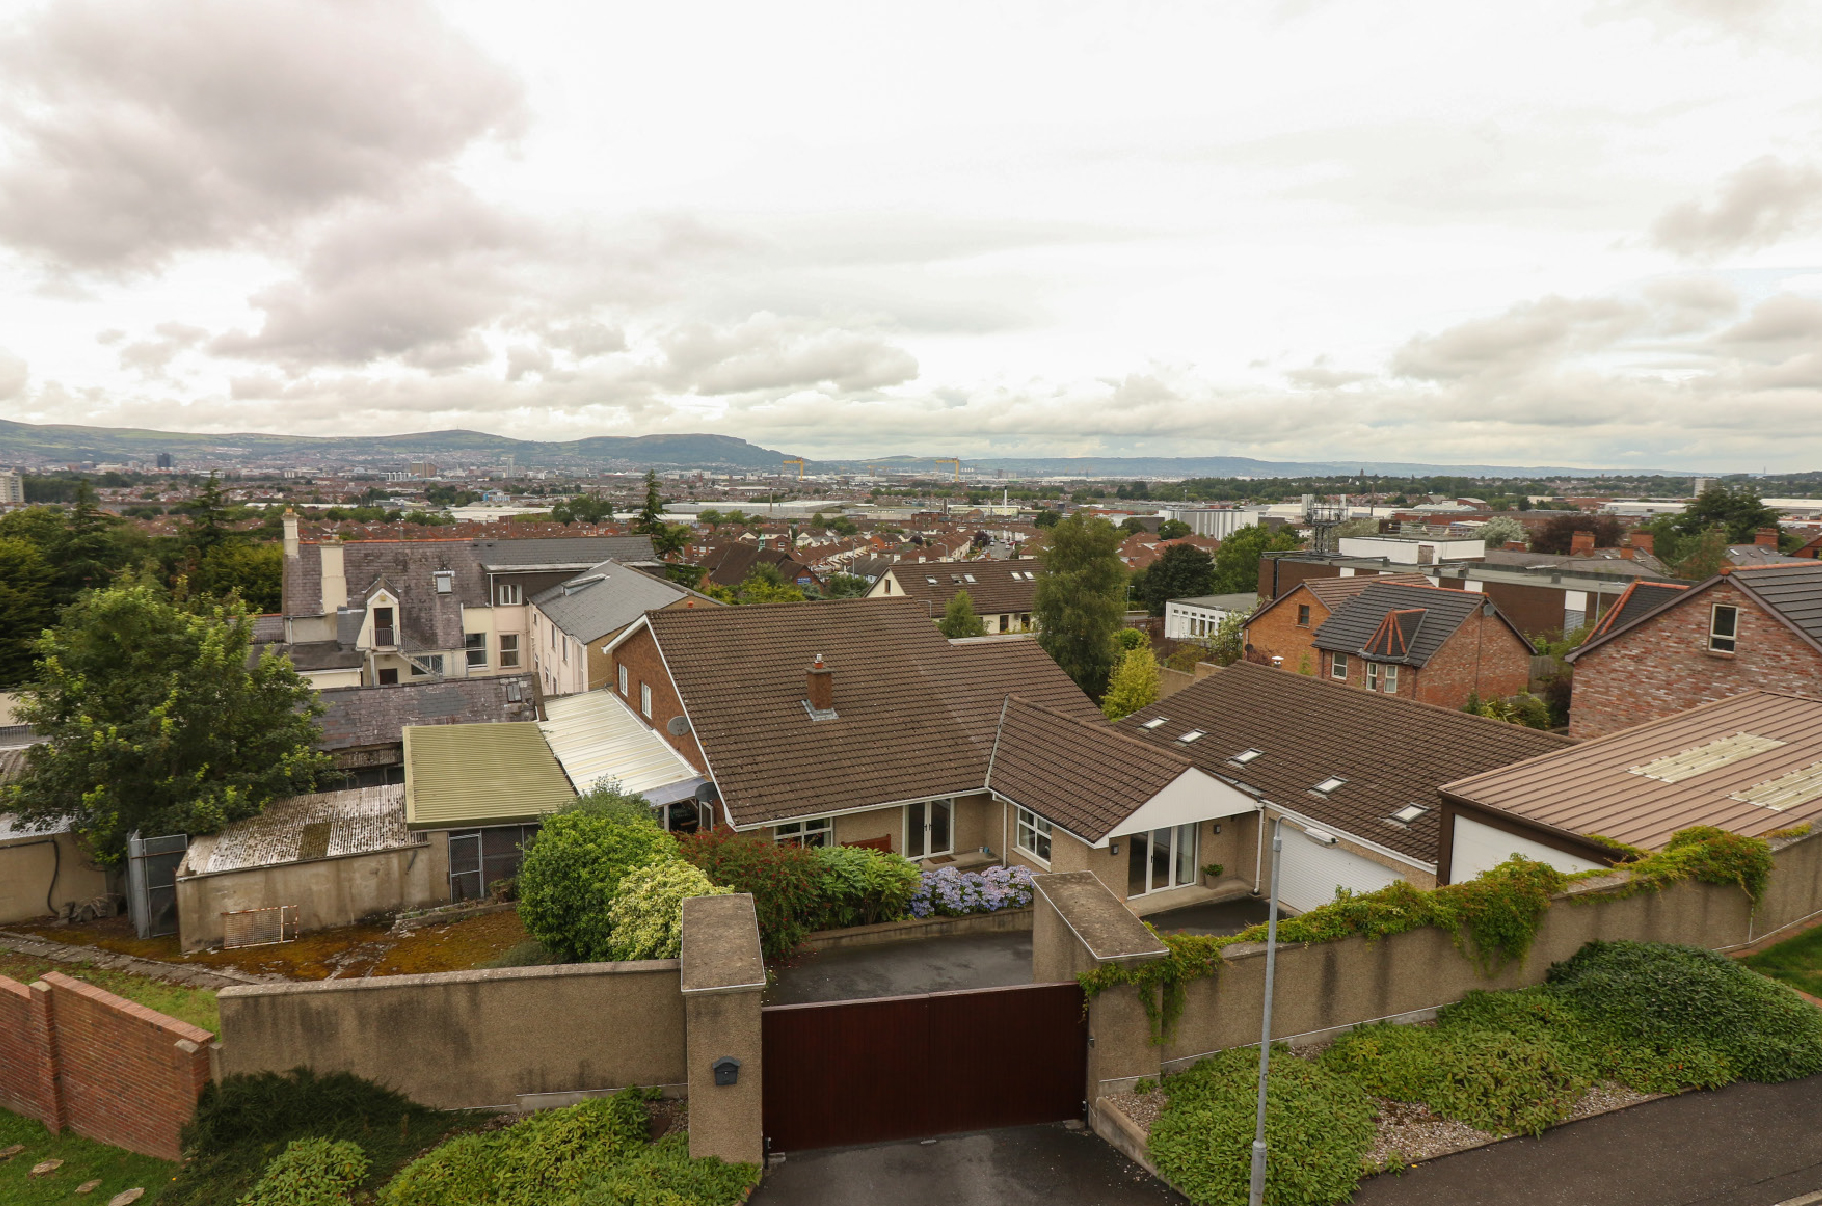 130 Upper Knockbreda Road, Castlereagh, Belfast, Co. Antrim, BT6 9QB photo